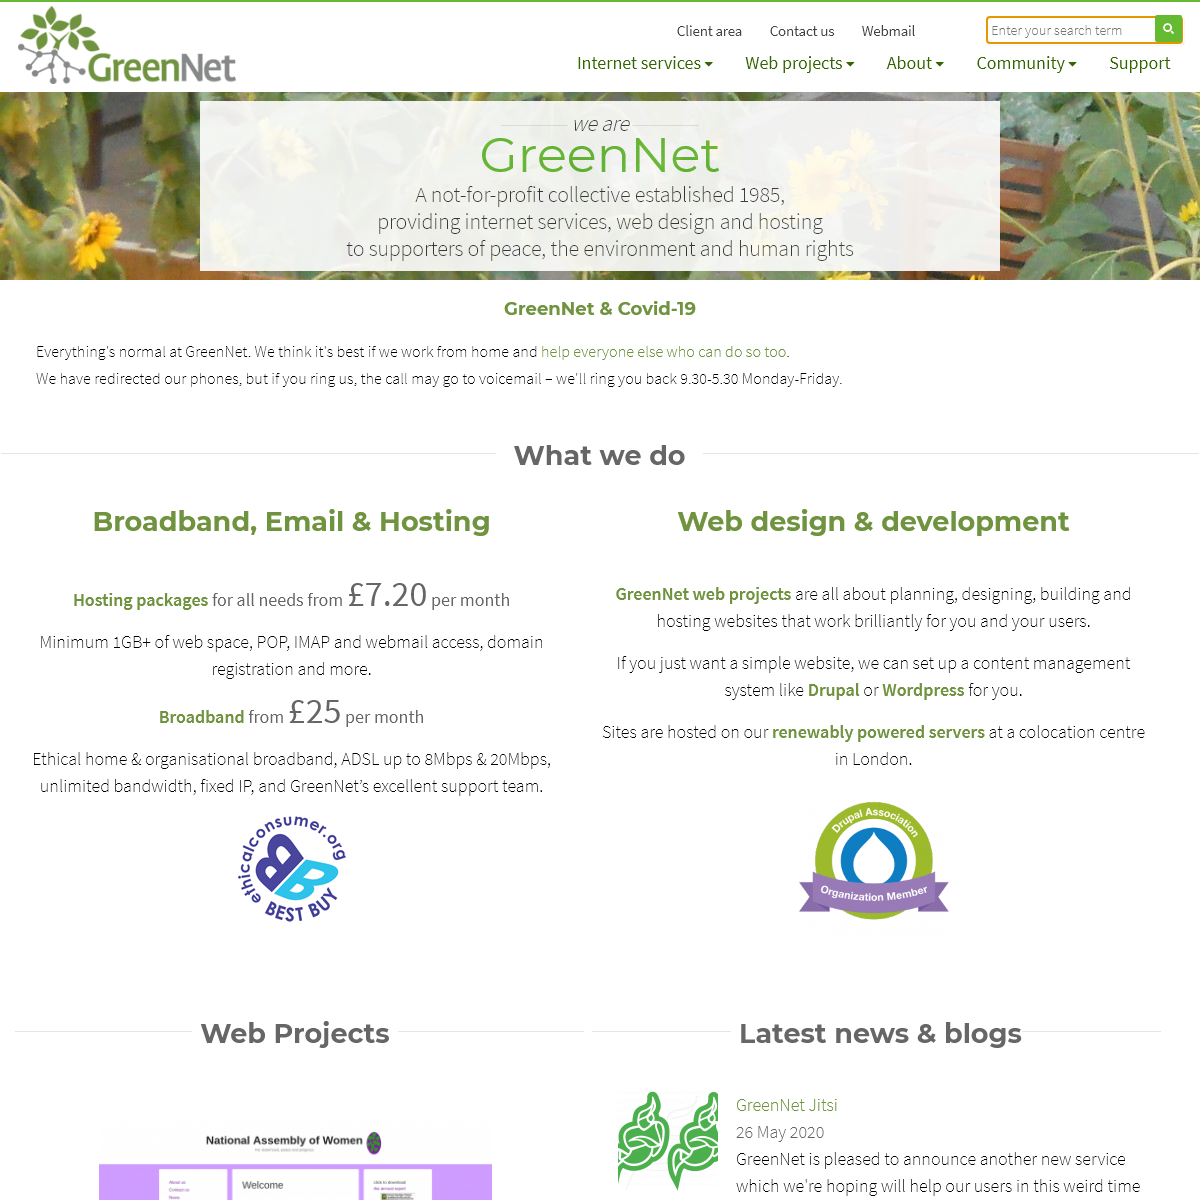 GreenNet - Internet services, web design and hosting for activists